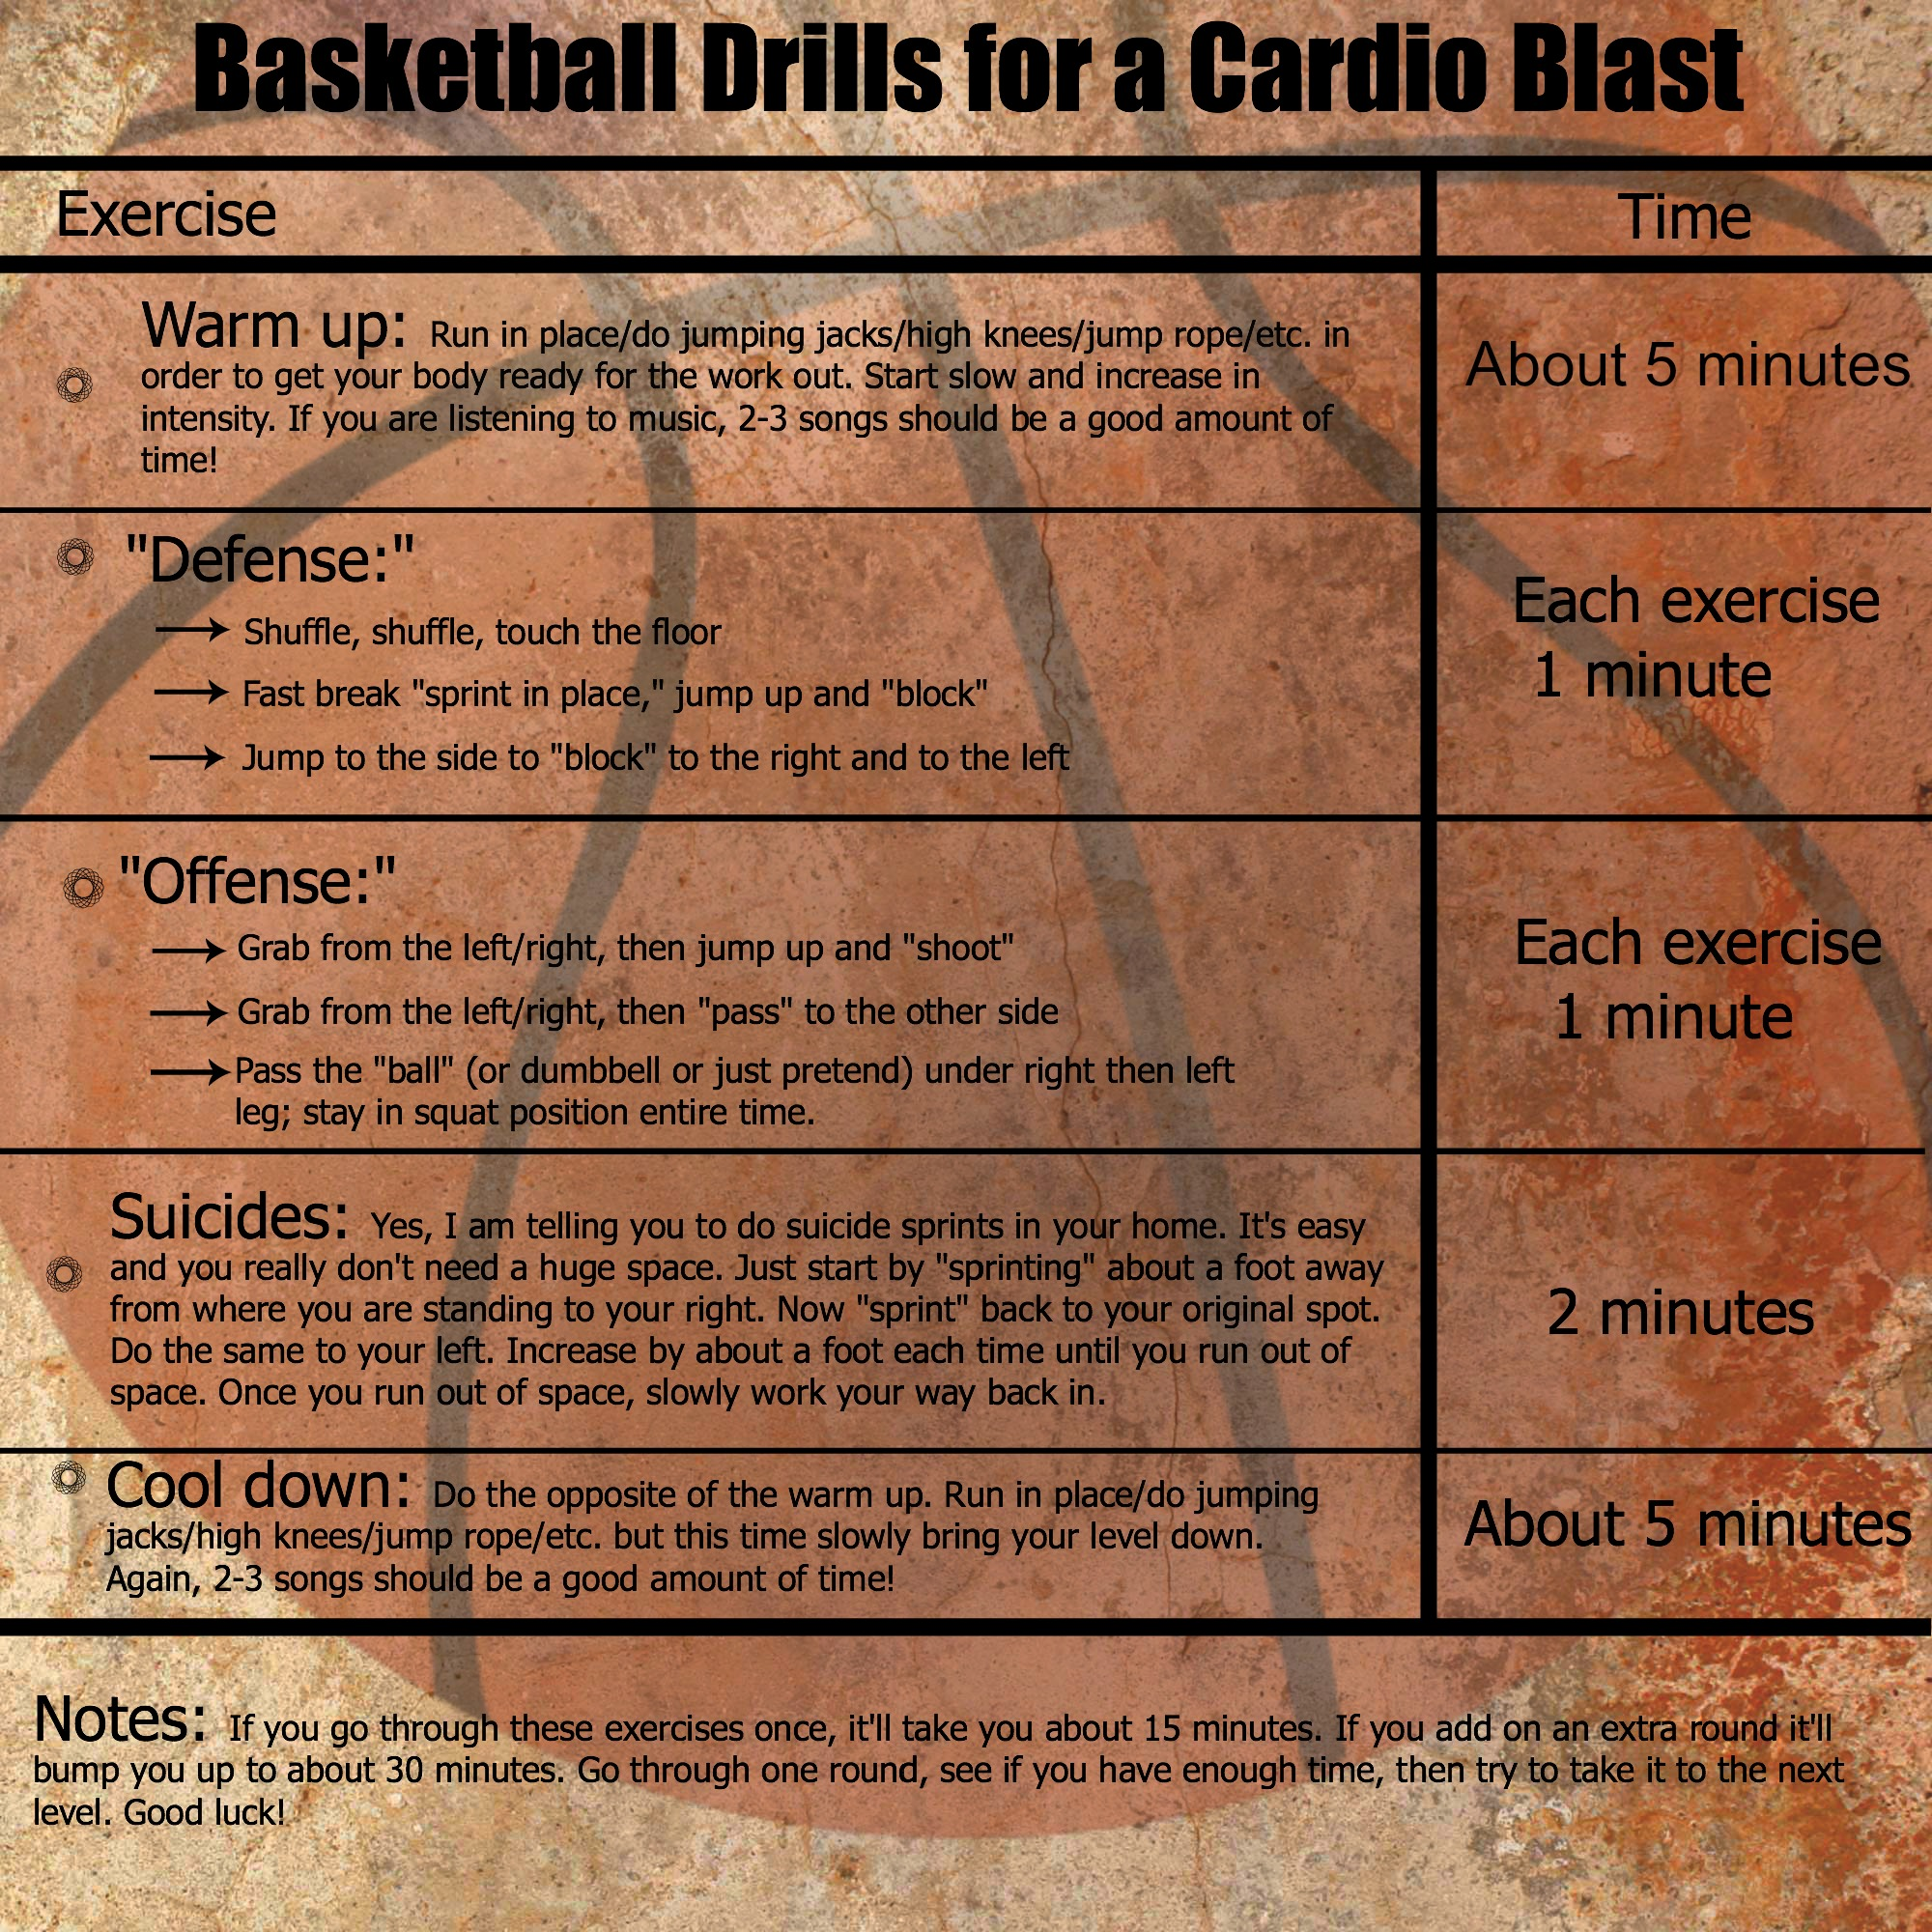 Basketball Drills for a Cardio Blast - The Good Mama